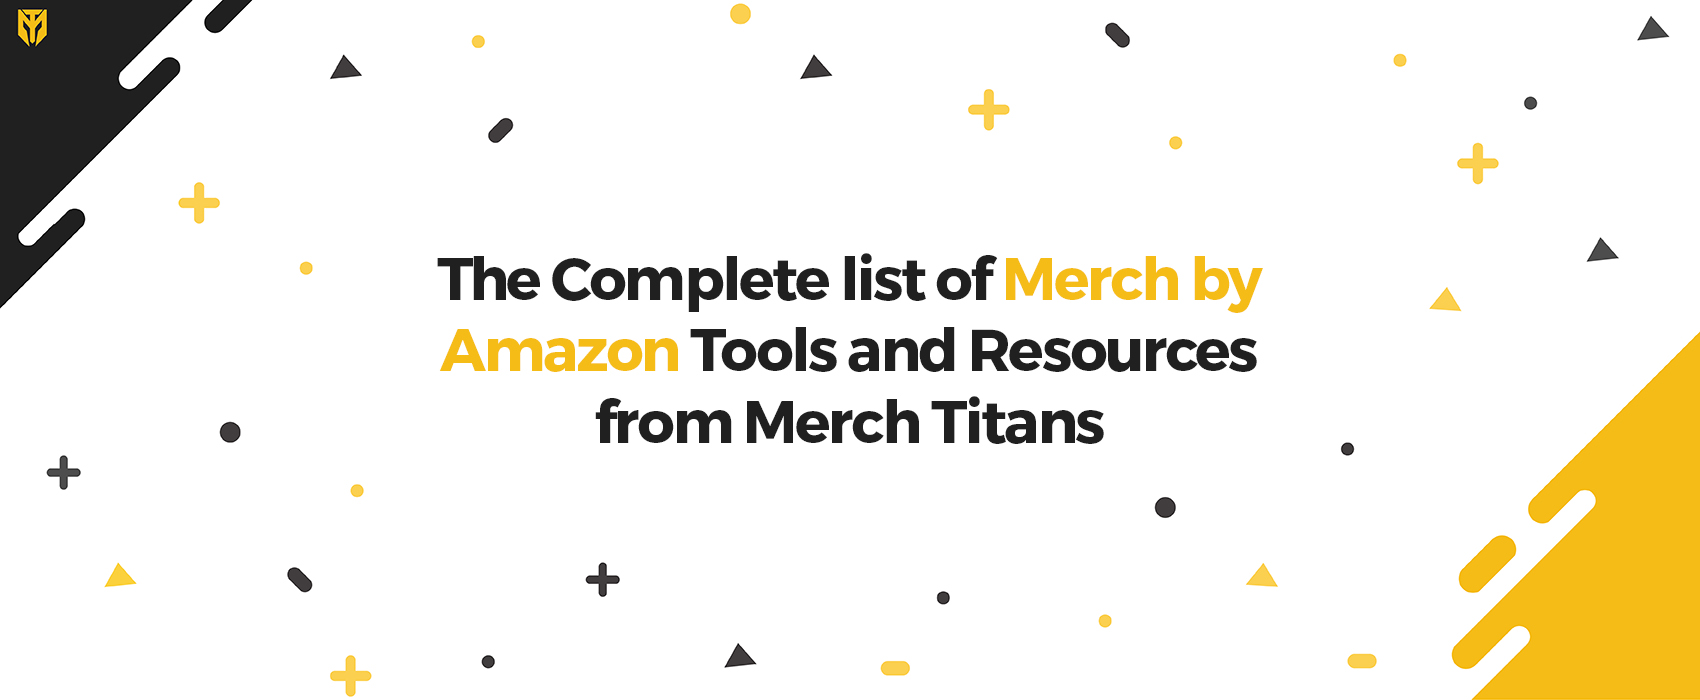 Merch by Amazon Tools and Resources